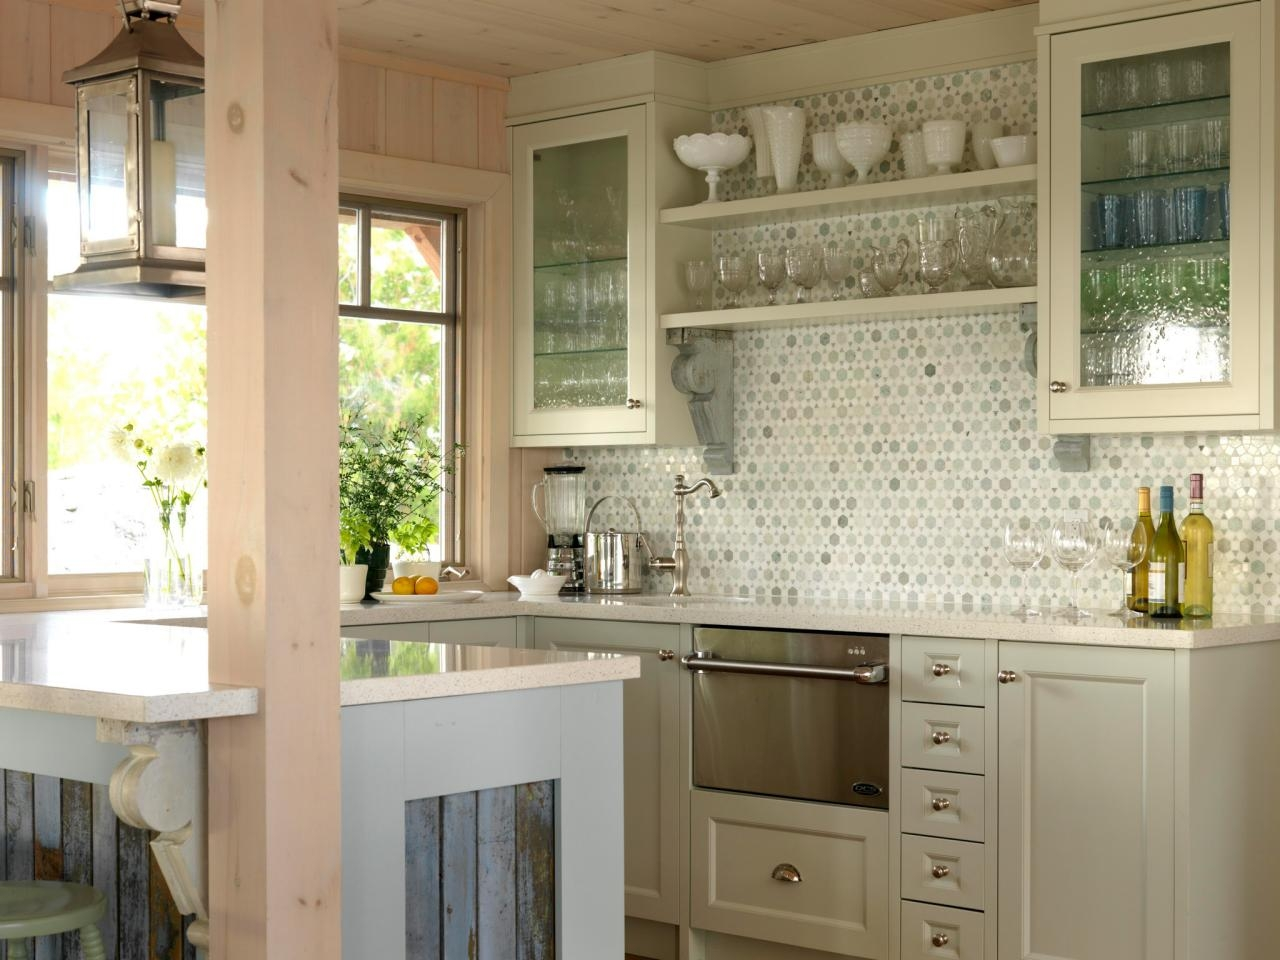 Kitchen Wall Cabinets With Glass Doors For Glass Kitchen Shelves (Image 12 of 15)